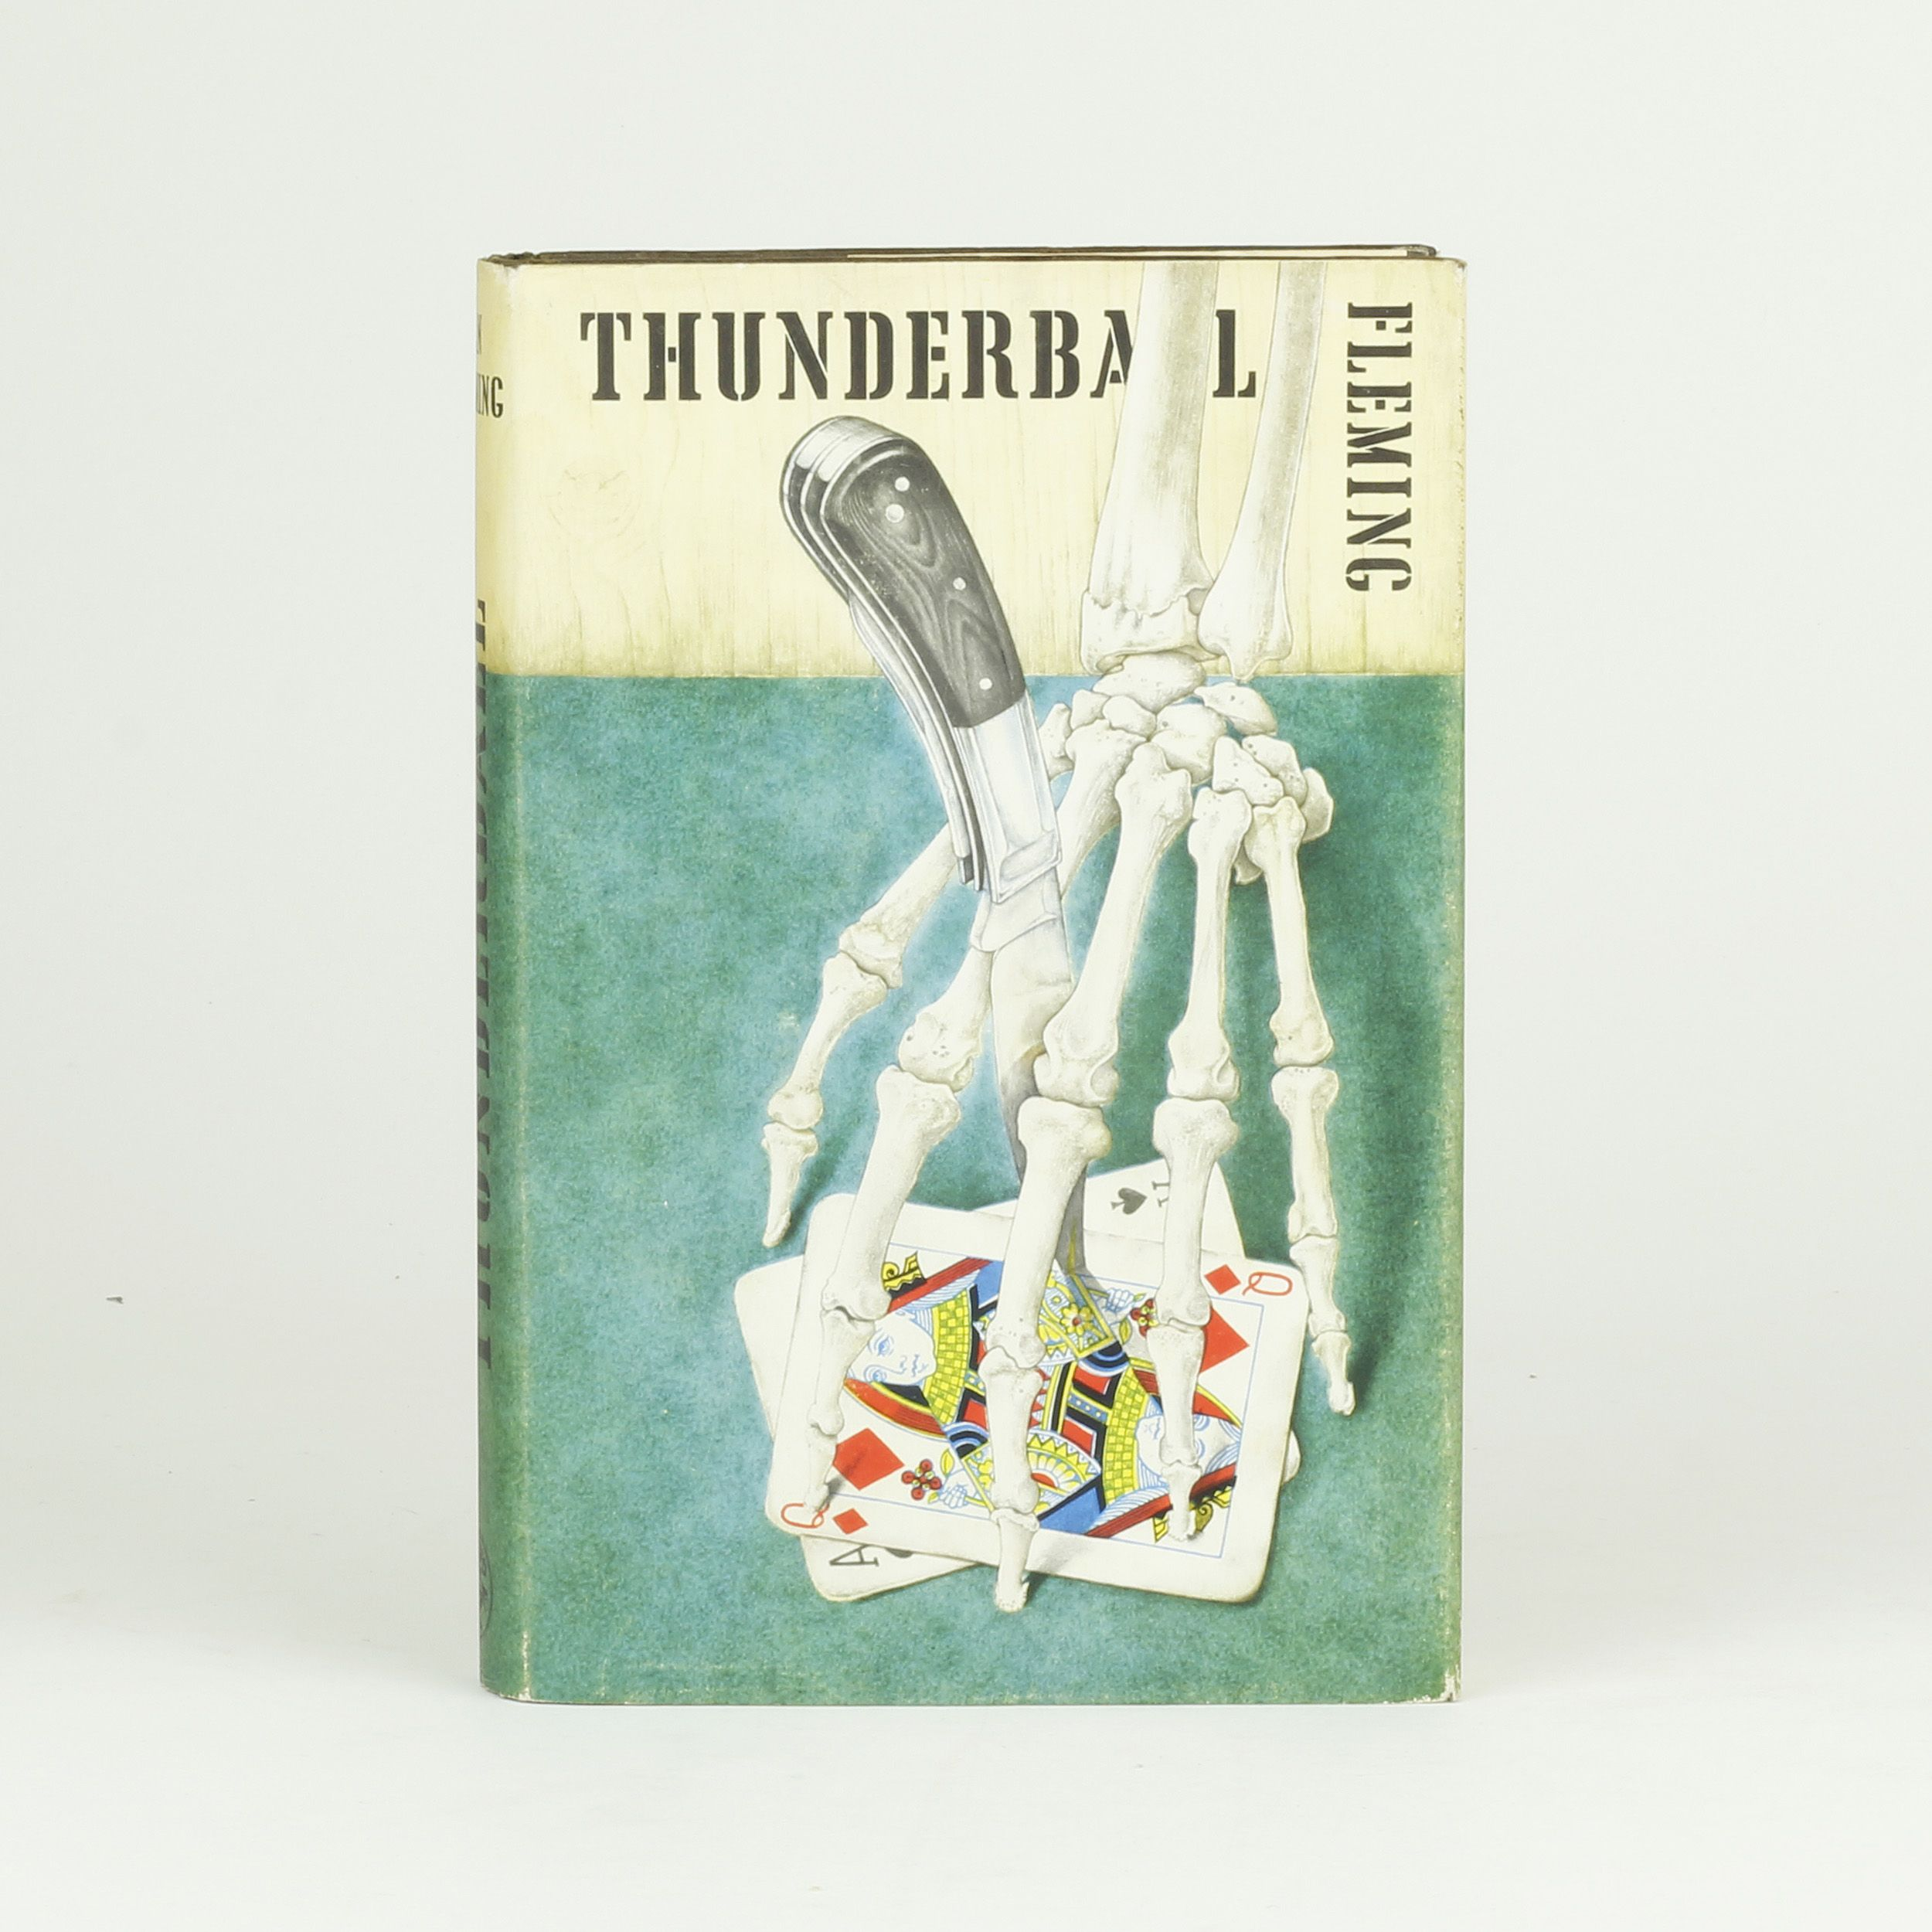 Thunderball By FLEMING, Ian - Jonkers Rare Books